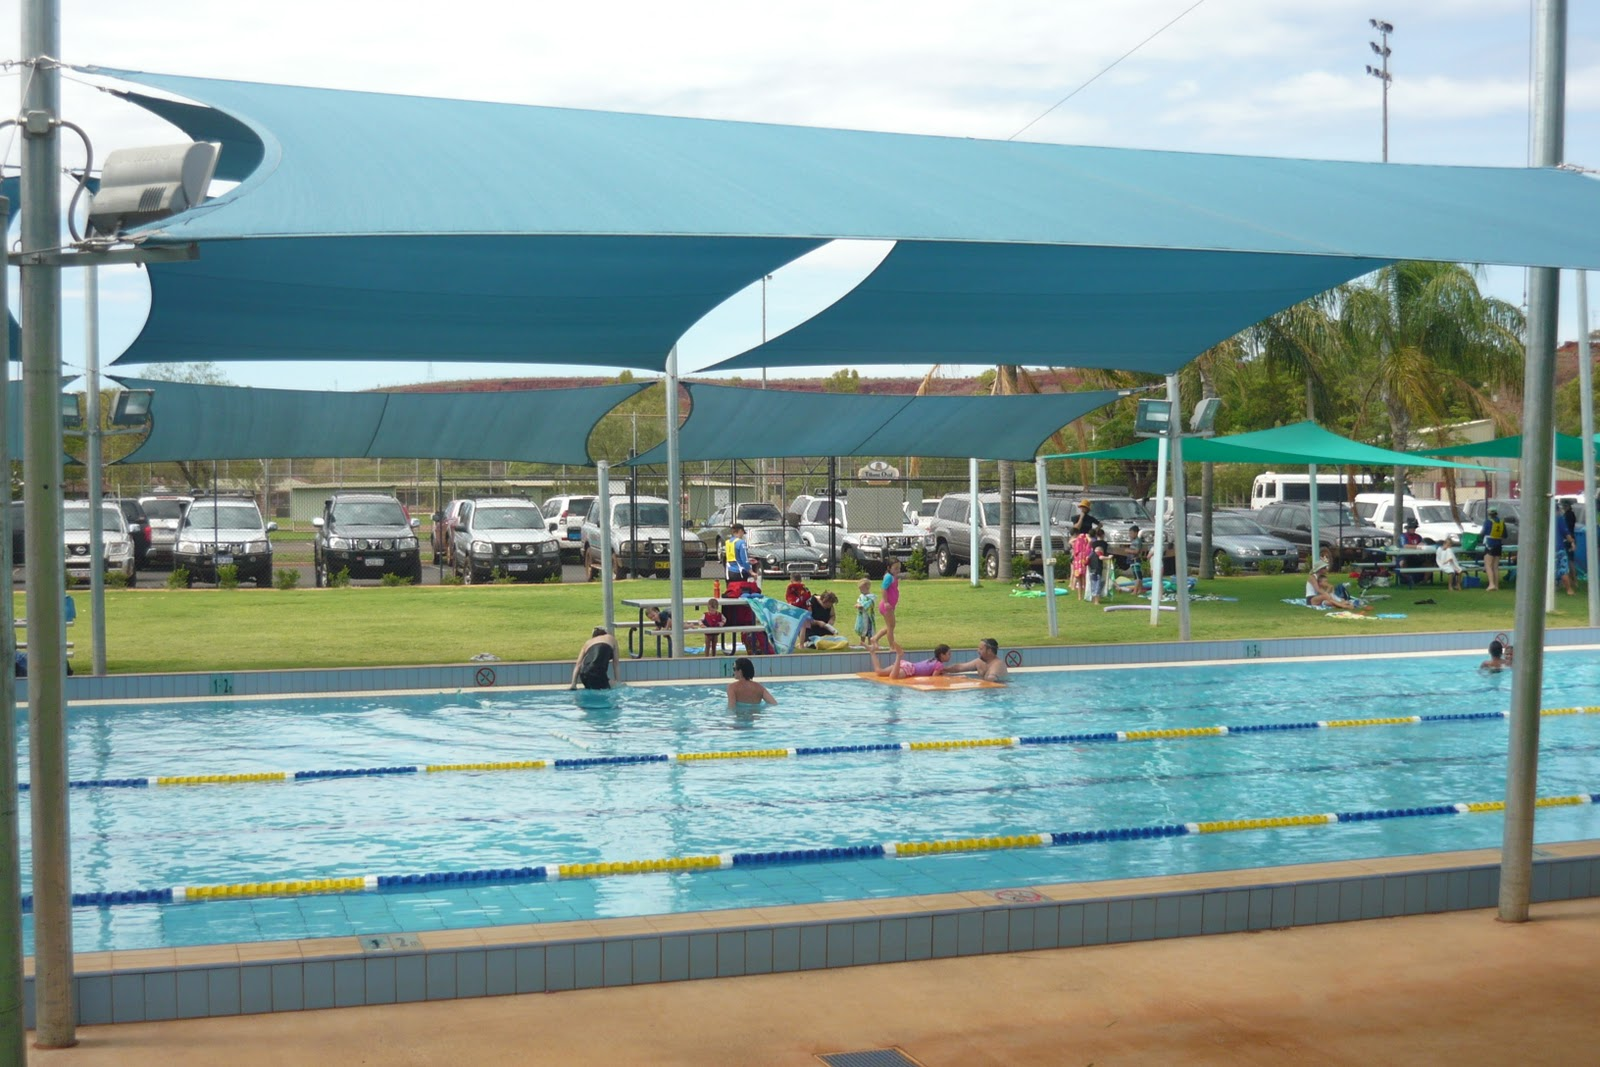 If You Have Any Requirements For The Swimming Pool Shade Car Parking Shades Pvc Hdpe And Ptfe Tensile Structure